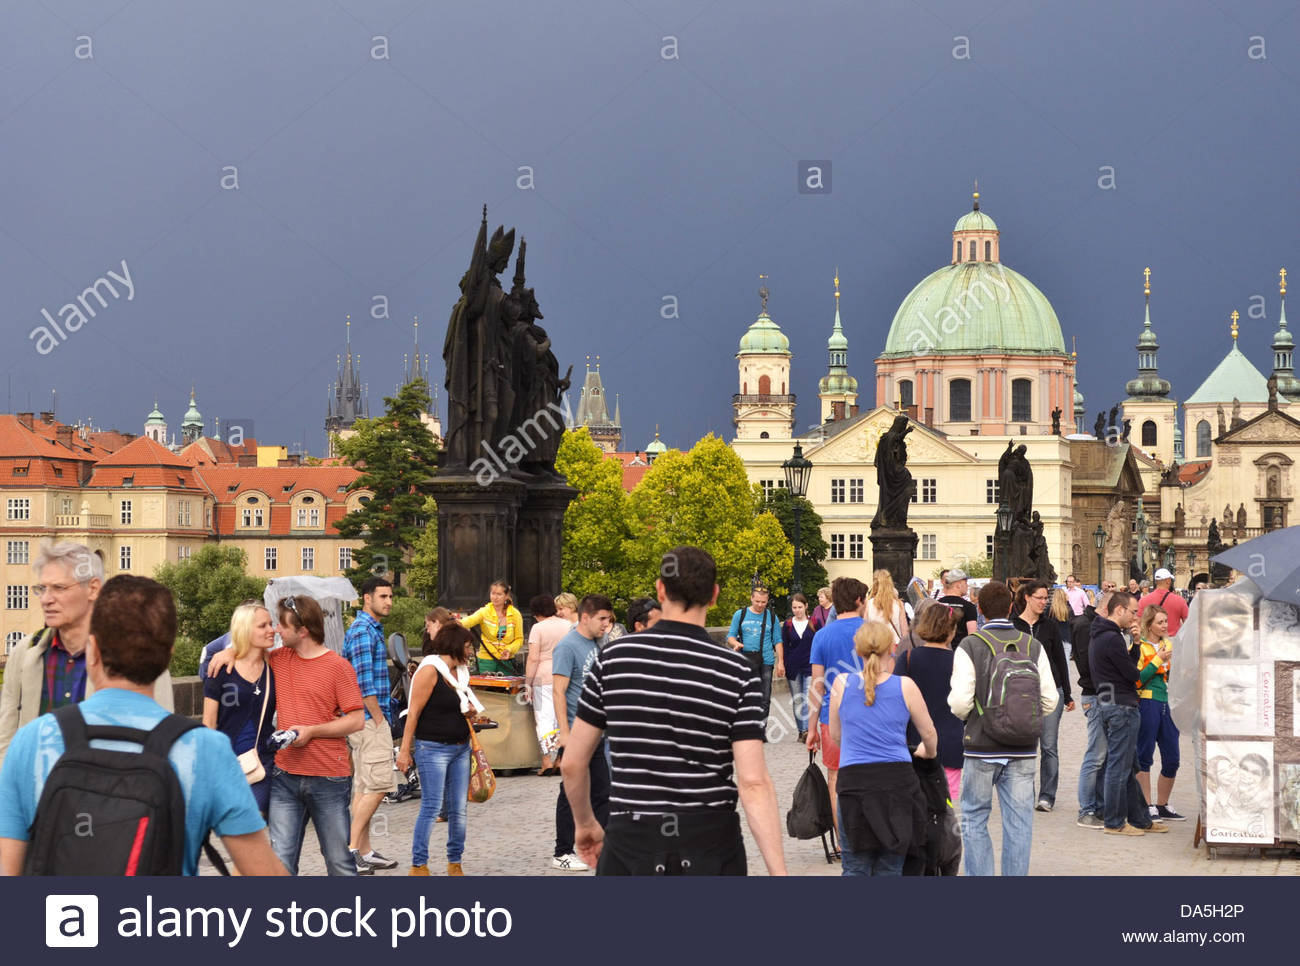 Prague Czech Republic - people walking across the historical Charles Bridge with dark sky above. - Stock Image